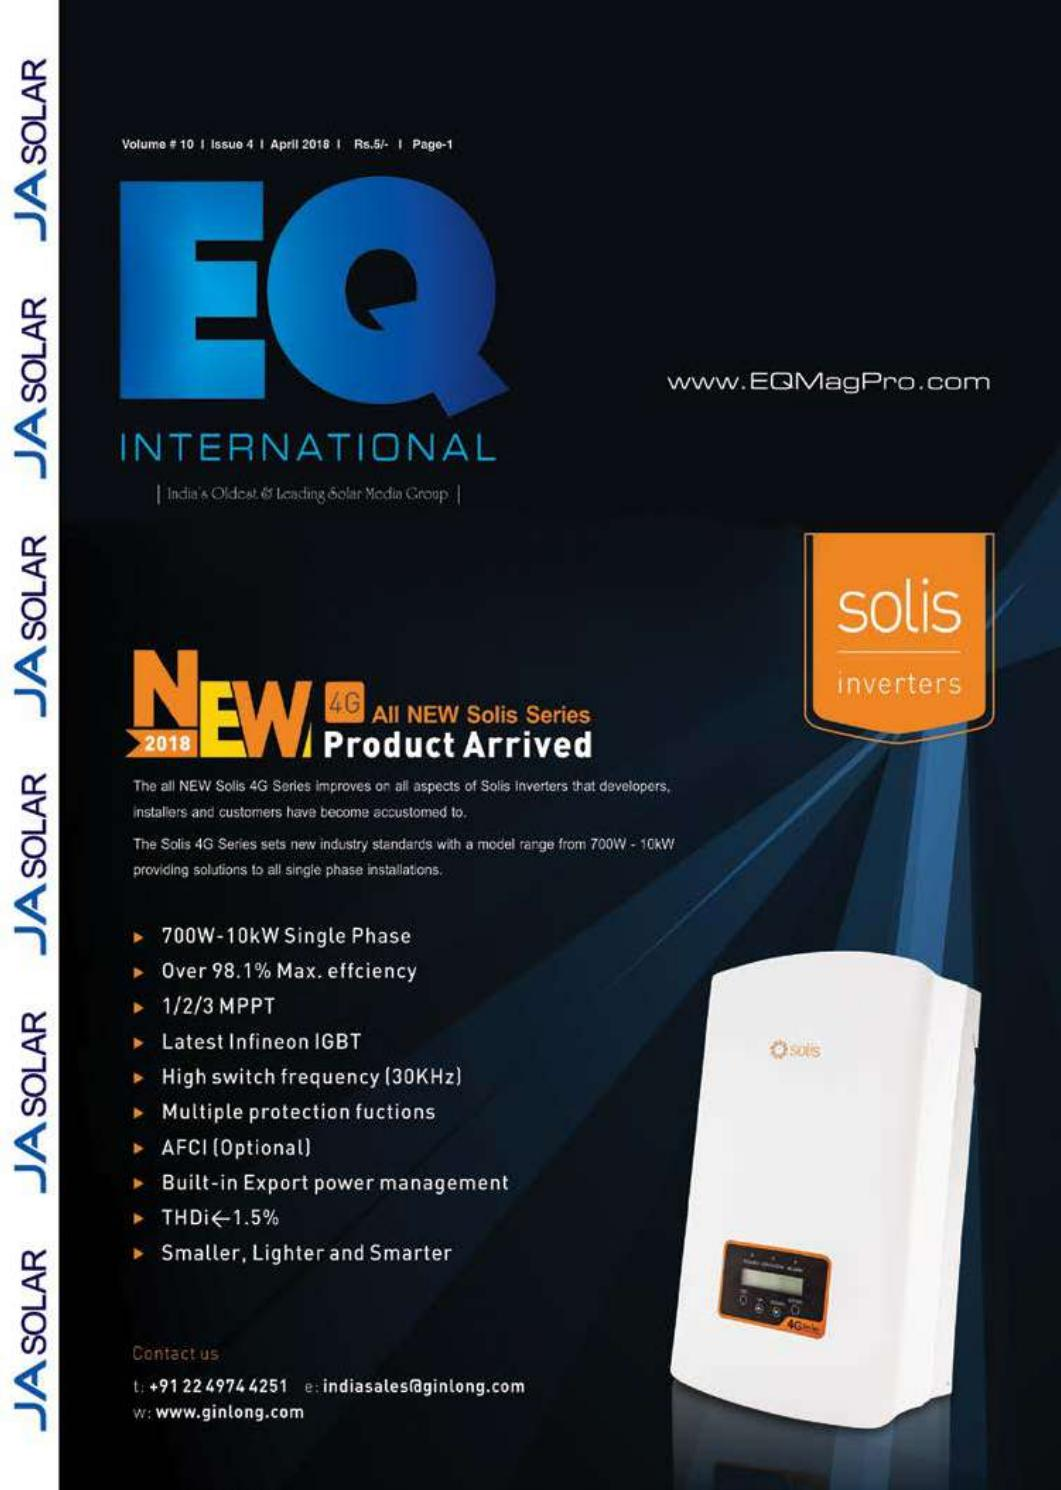 Eq Magazine April 2018 Edition By Intl Solar Media Group Issuu How To Install An Afci Outlet Plus We Make Stuff Explode Home